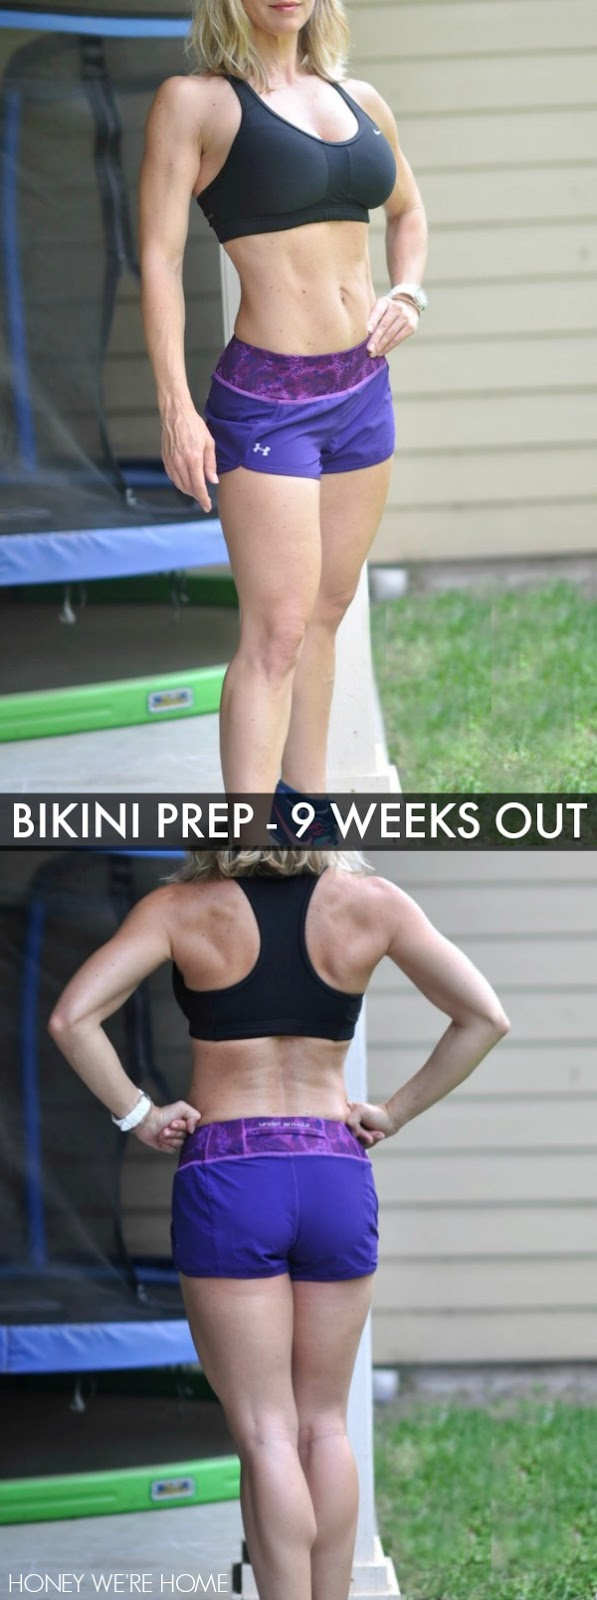 NPC Bikini Contest Prep - 9 Weeks Out Recap